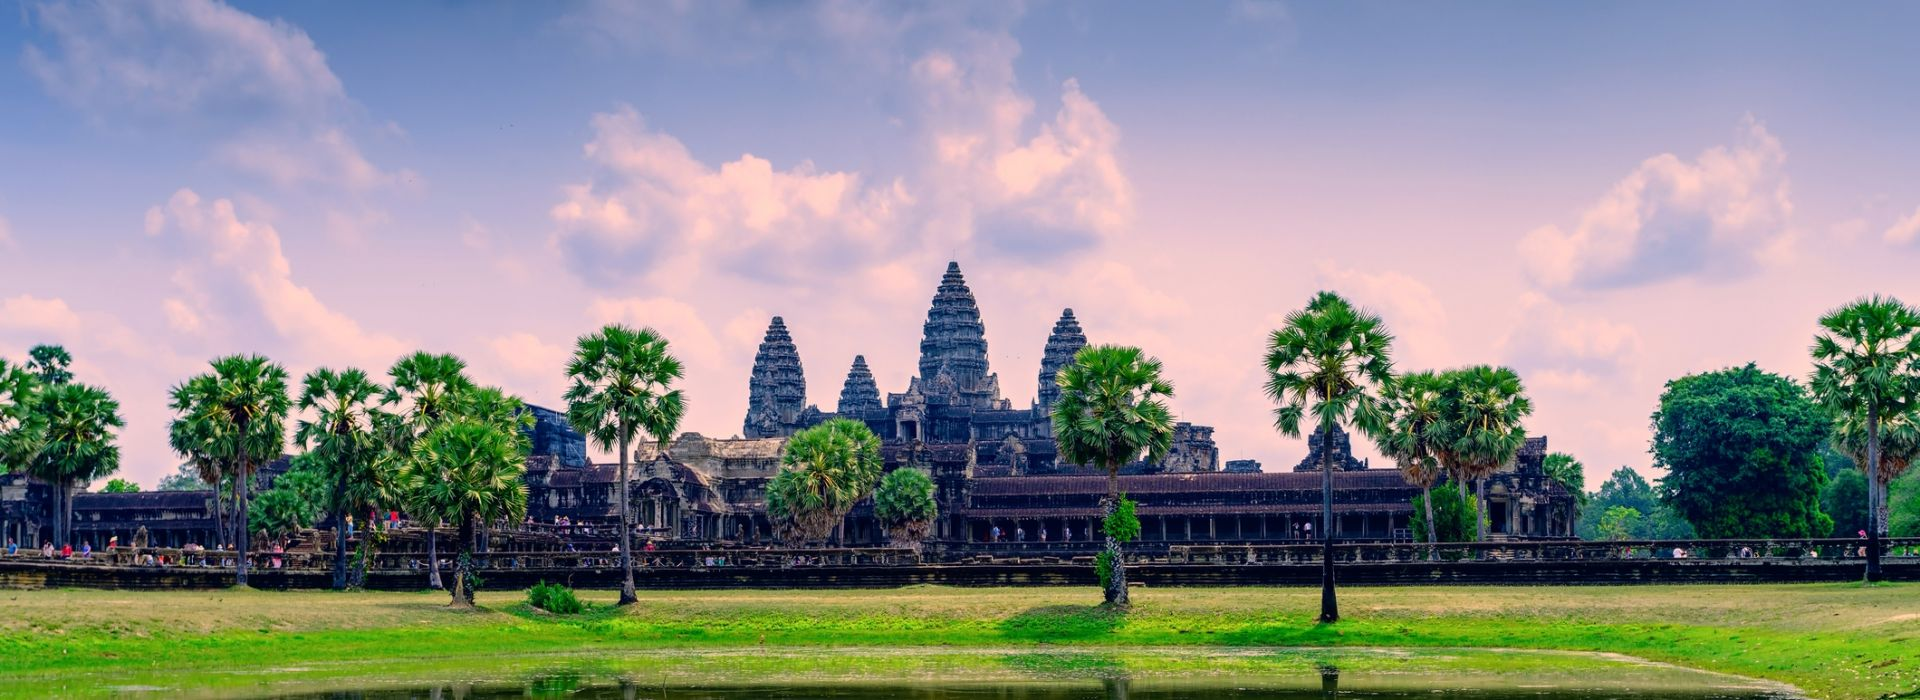 Food, wine, events and nightlife Tours in Siem Reap